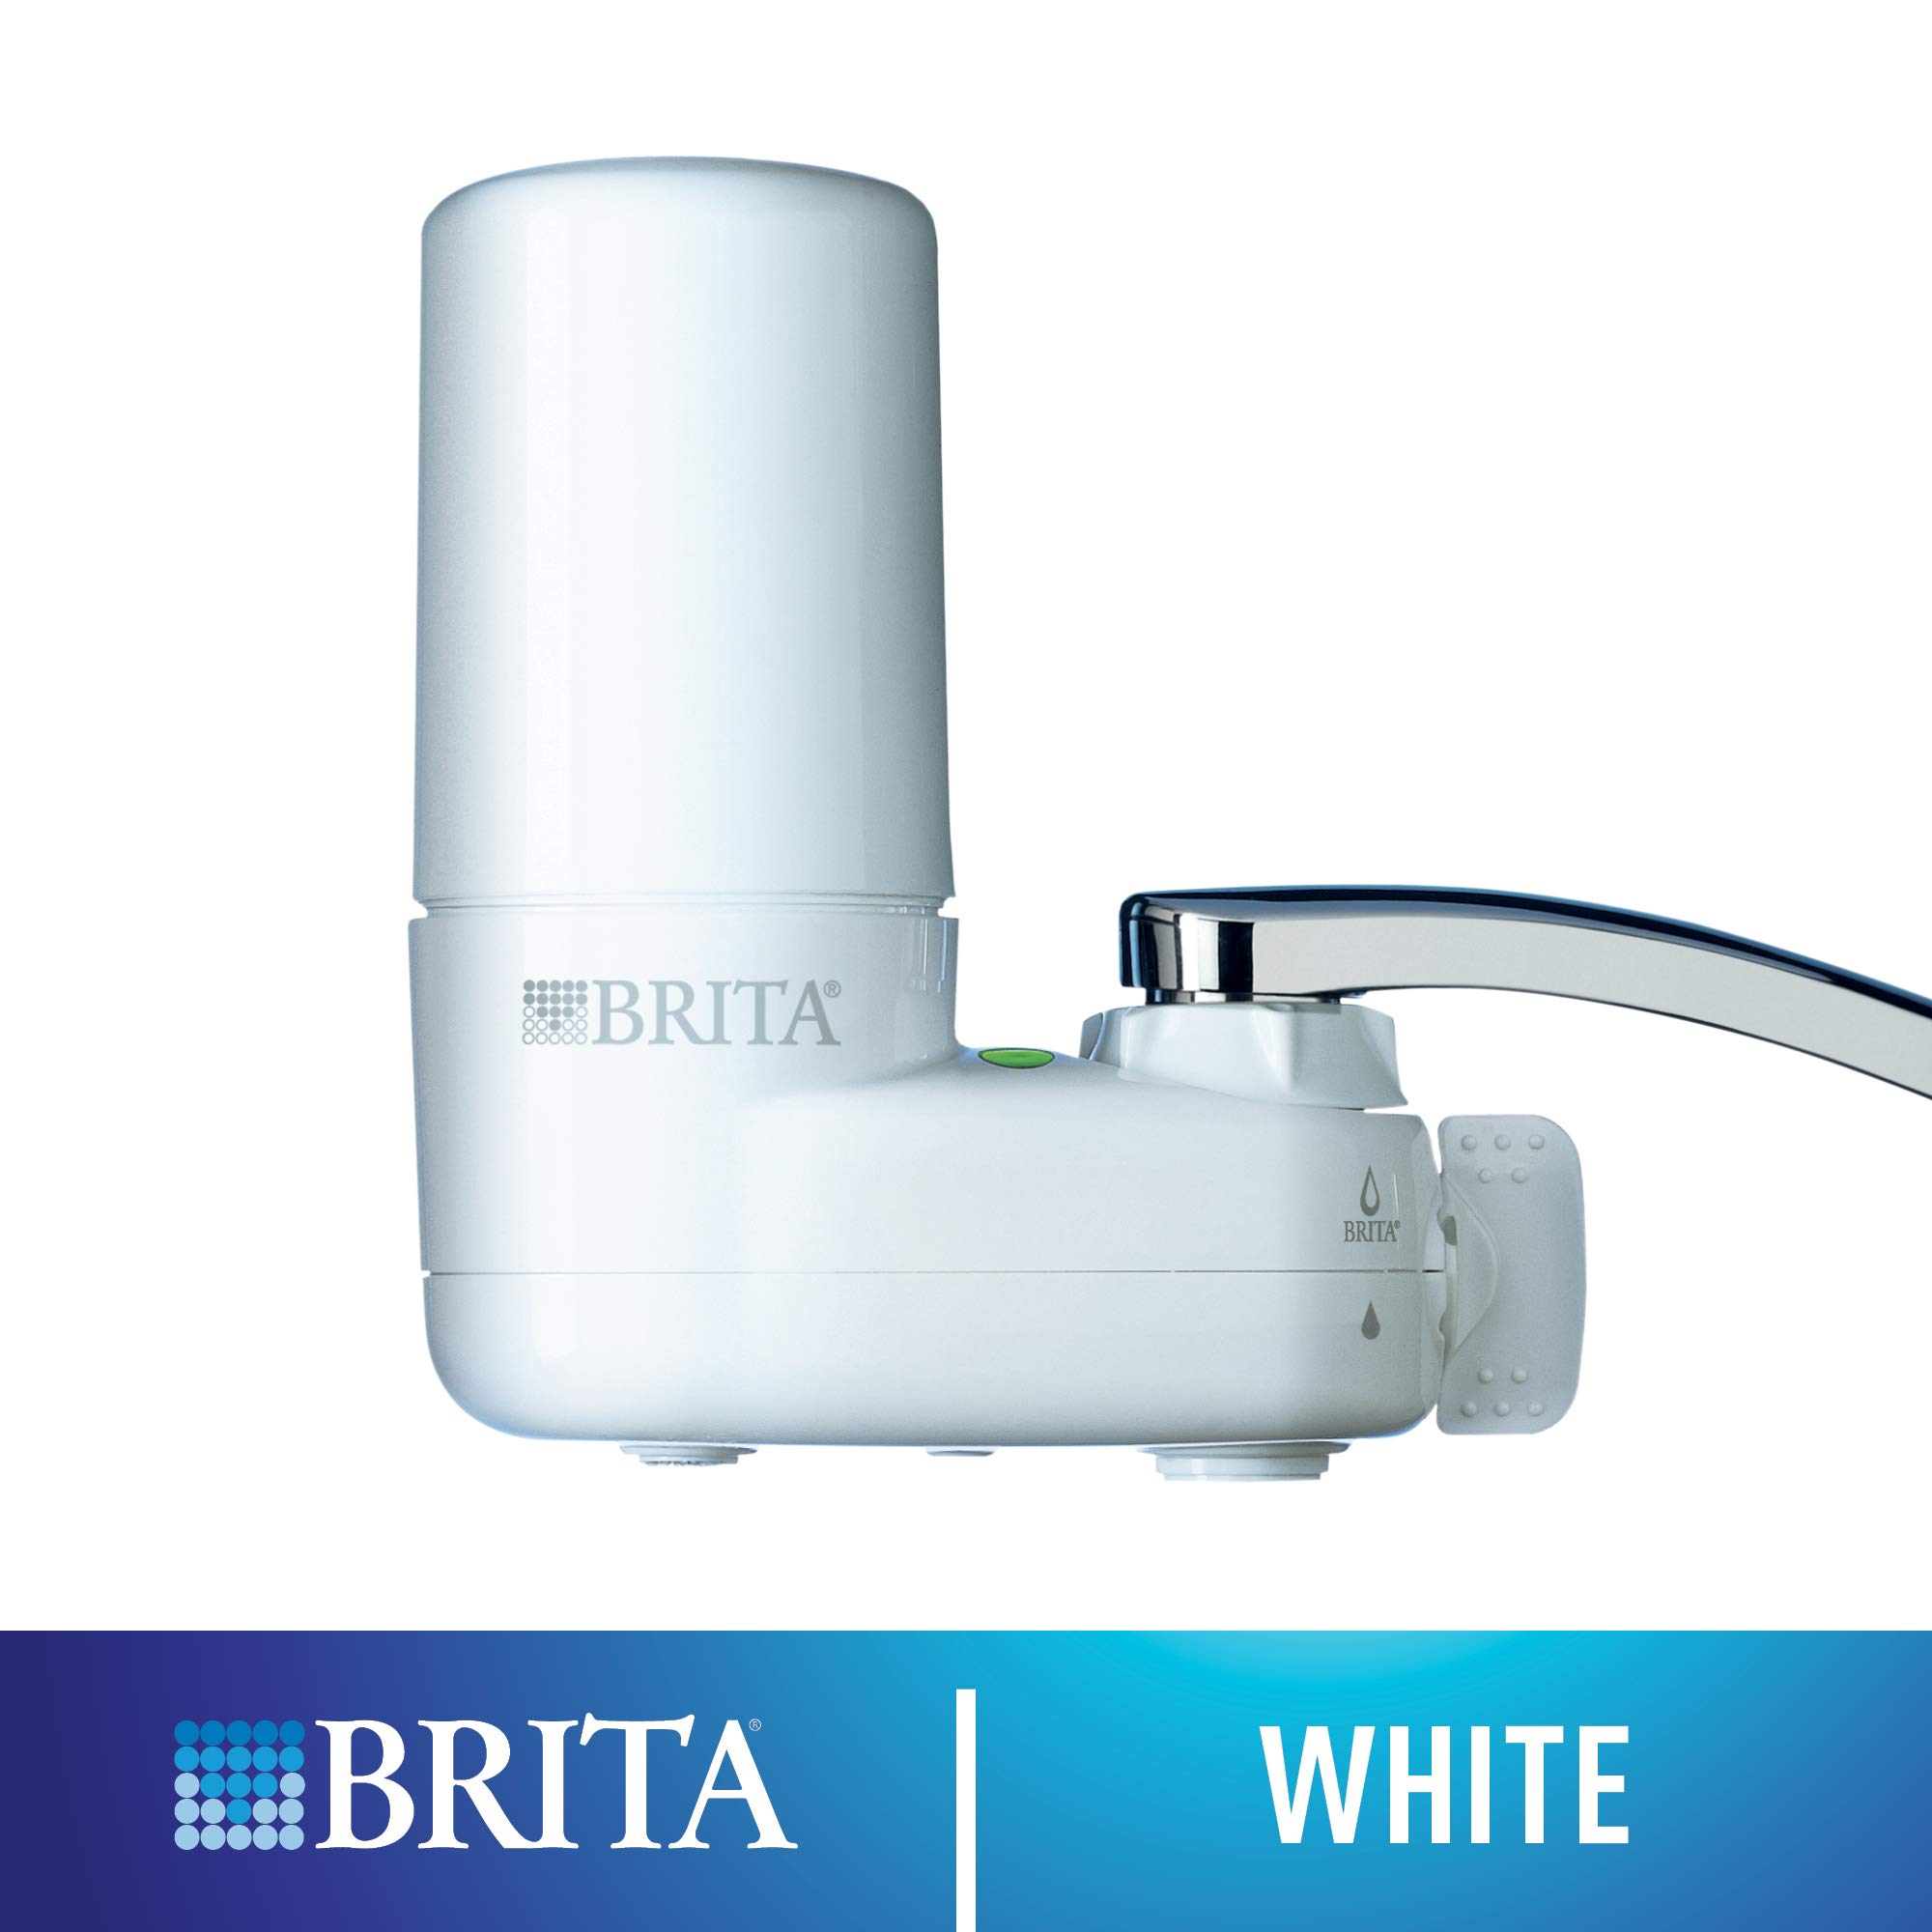 Brita Tap Water Filter System, Water Faucet Filtration System with Filter Change Reminder, Reduces Lead, BPA Free, Fits Standard Faucets Only - Basic, White by Brita